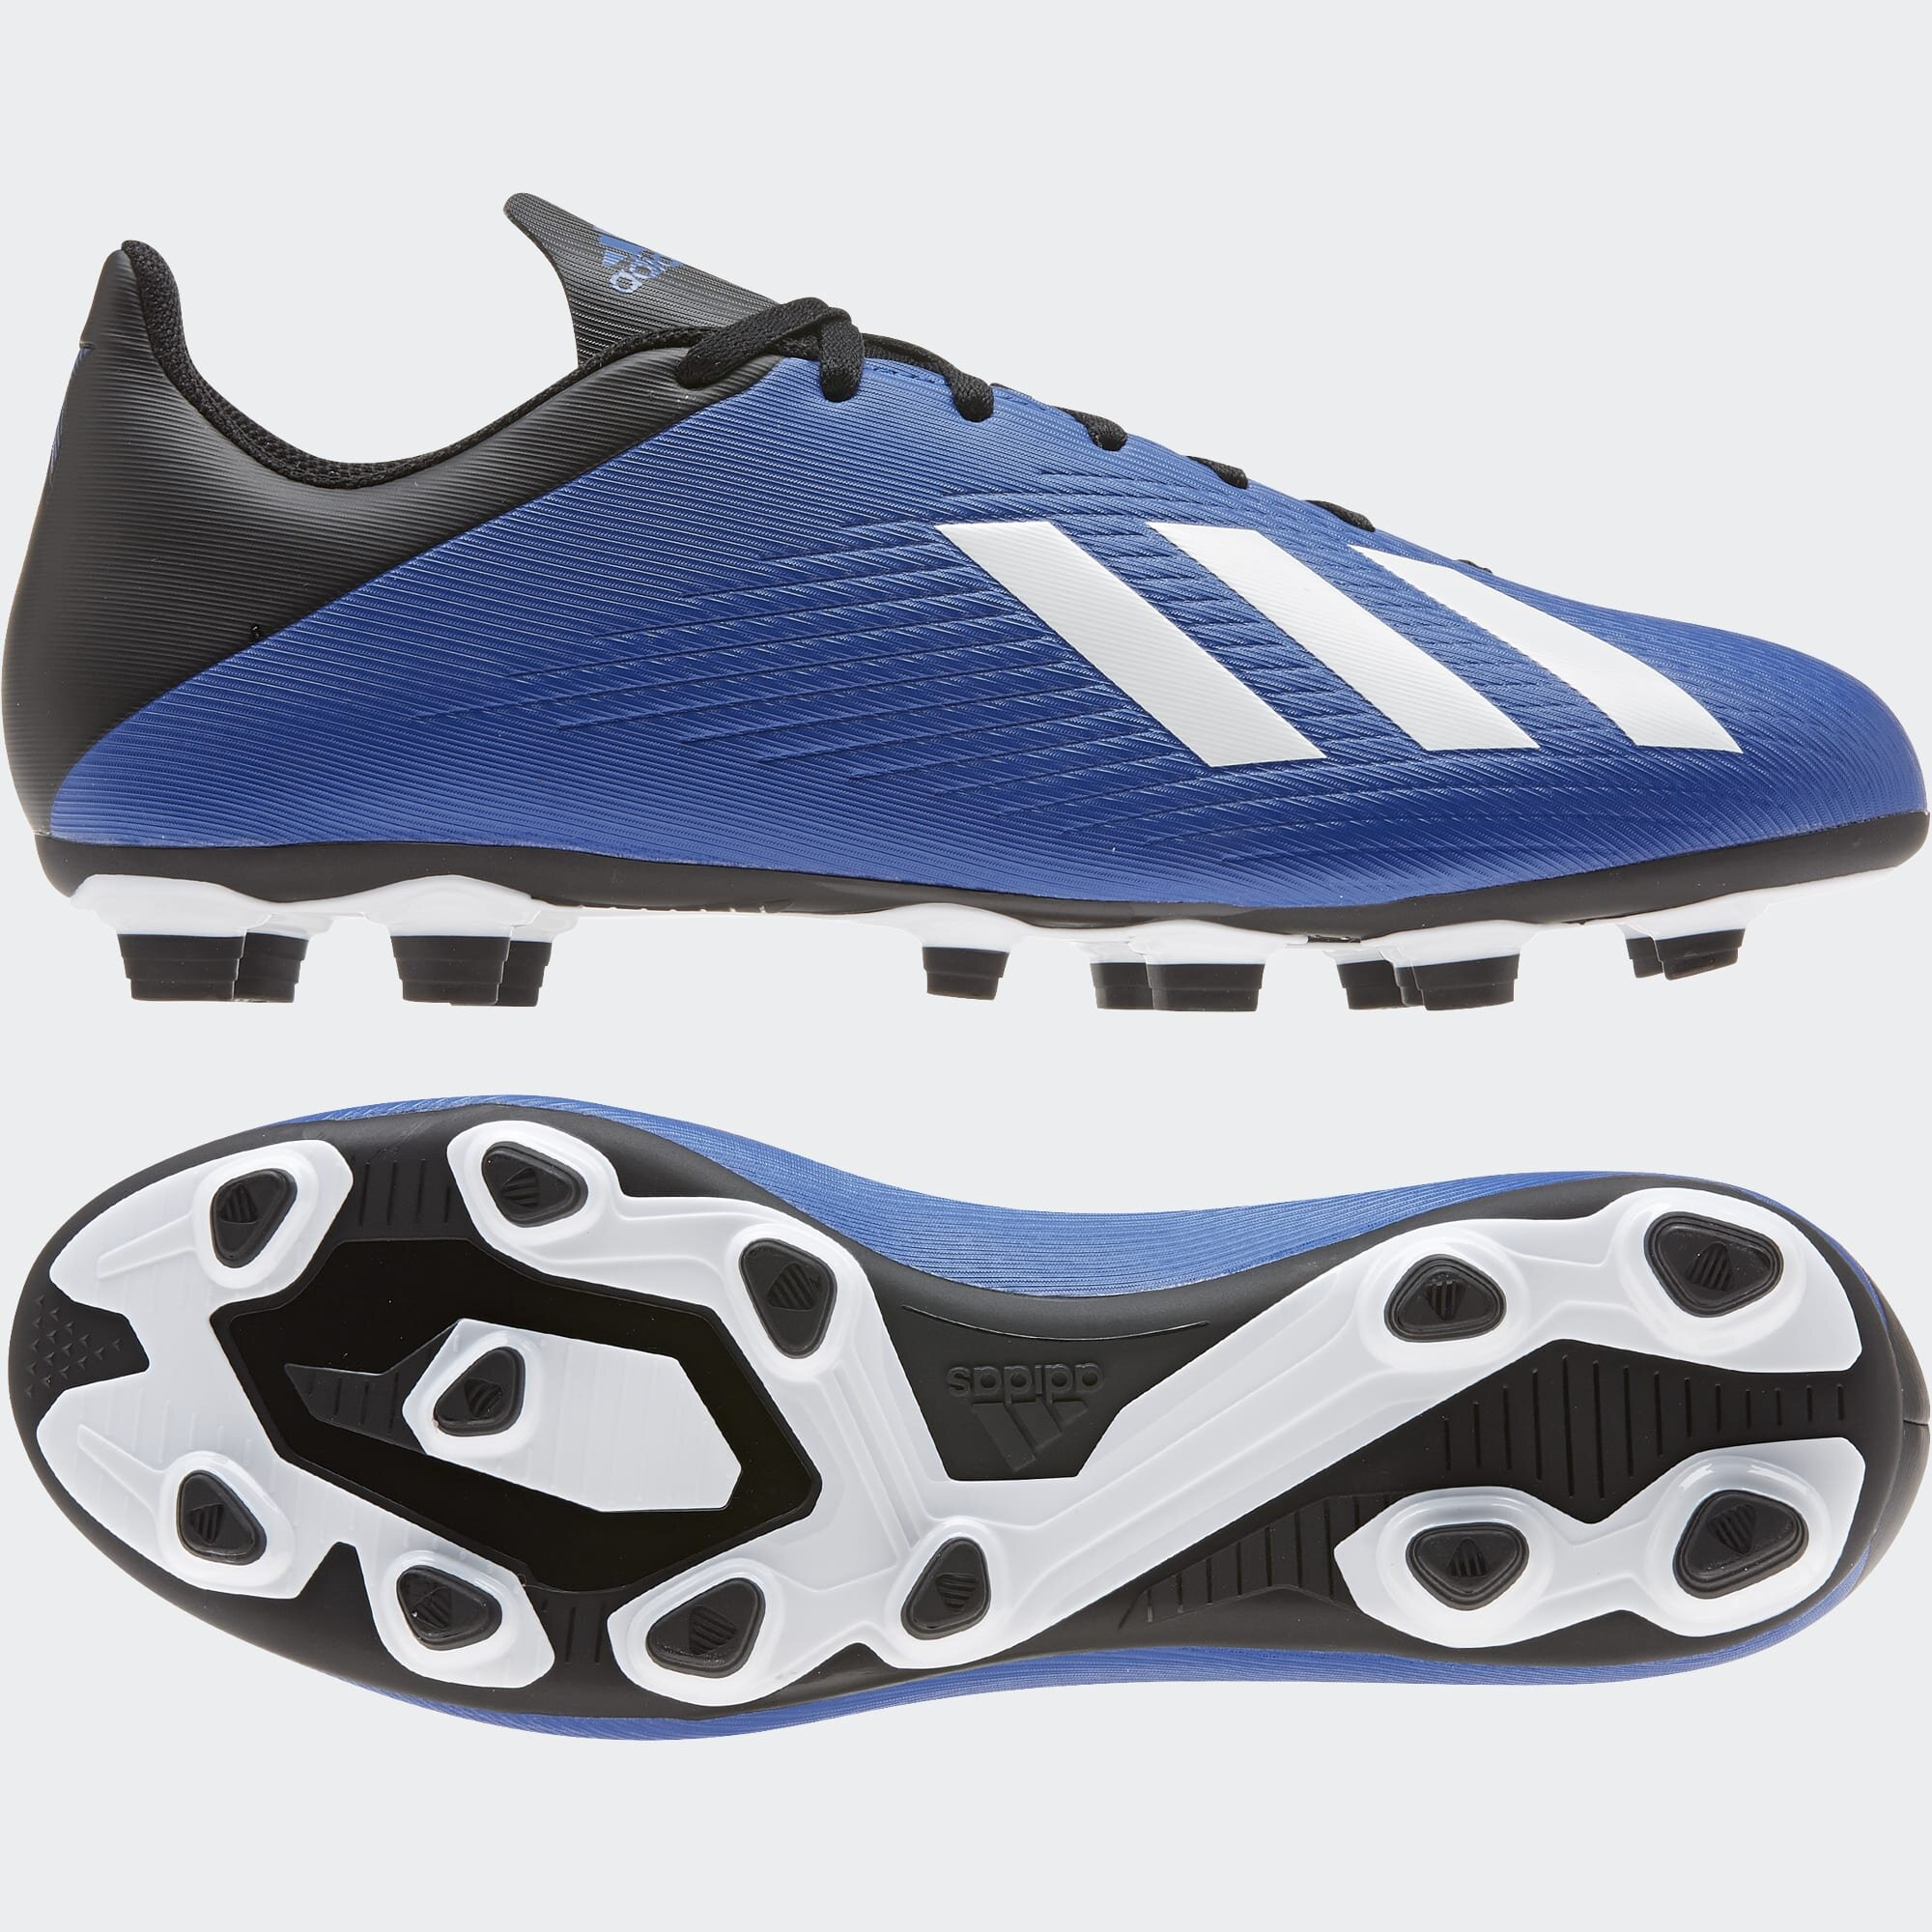 nudo fossato signora  Adidas X 19.4 Firm Ground Adults Football Boots - Buy Online - Ph:  1800-370-766 - AfterPay & ZipPay Available!